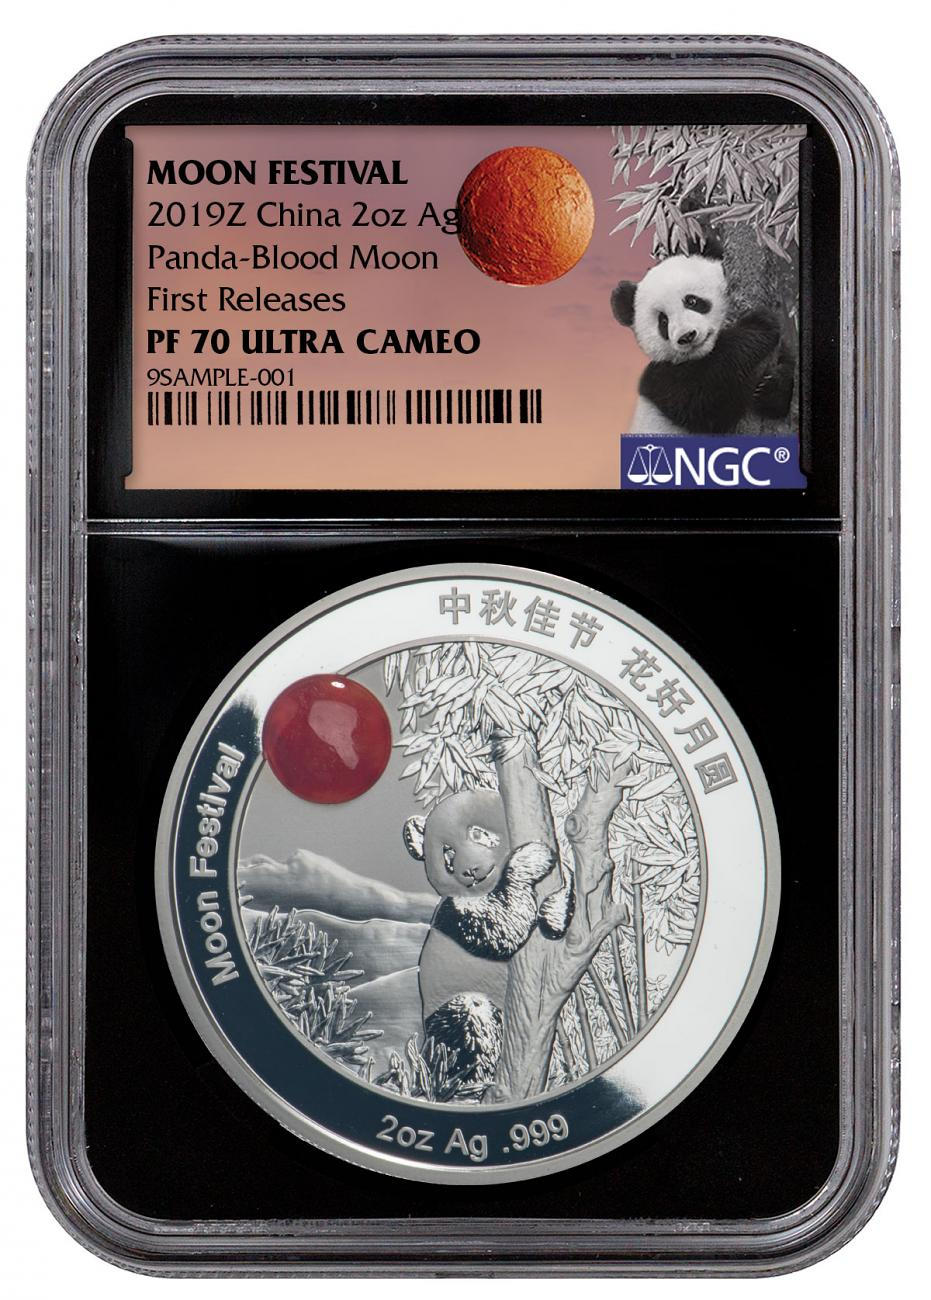 2019 China Moon Panda w/ Red Jade Insert 2 oz Silver Proof Medal NGC PF70 UC FR Deluxe Packaging, Moon Festival Booklet & COA